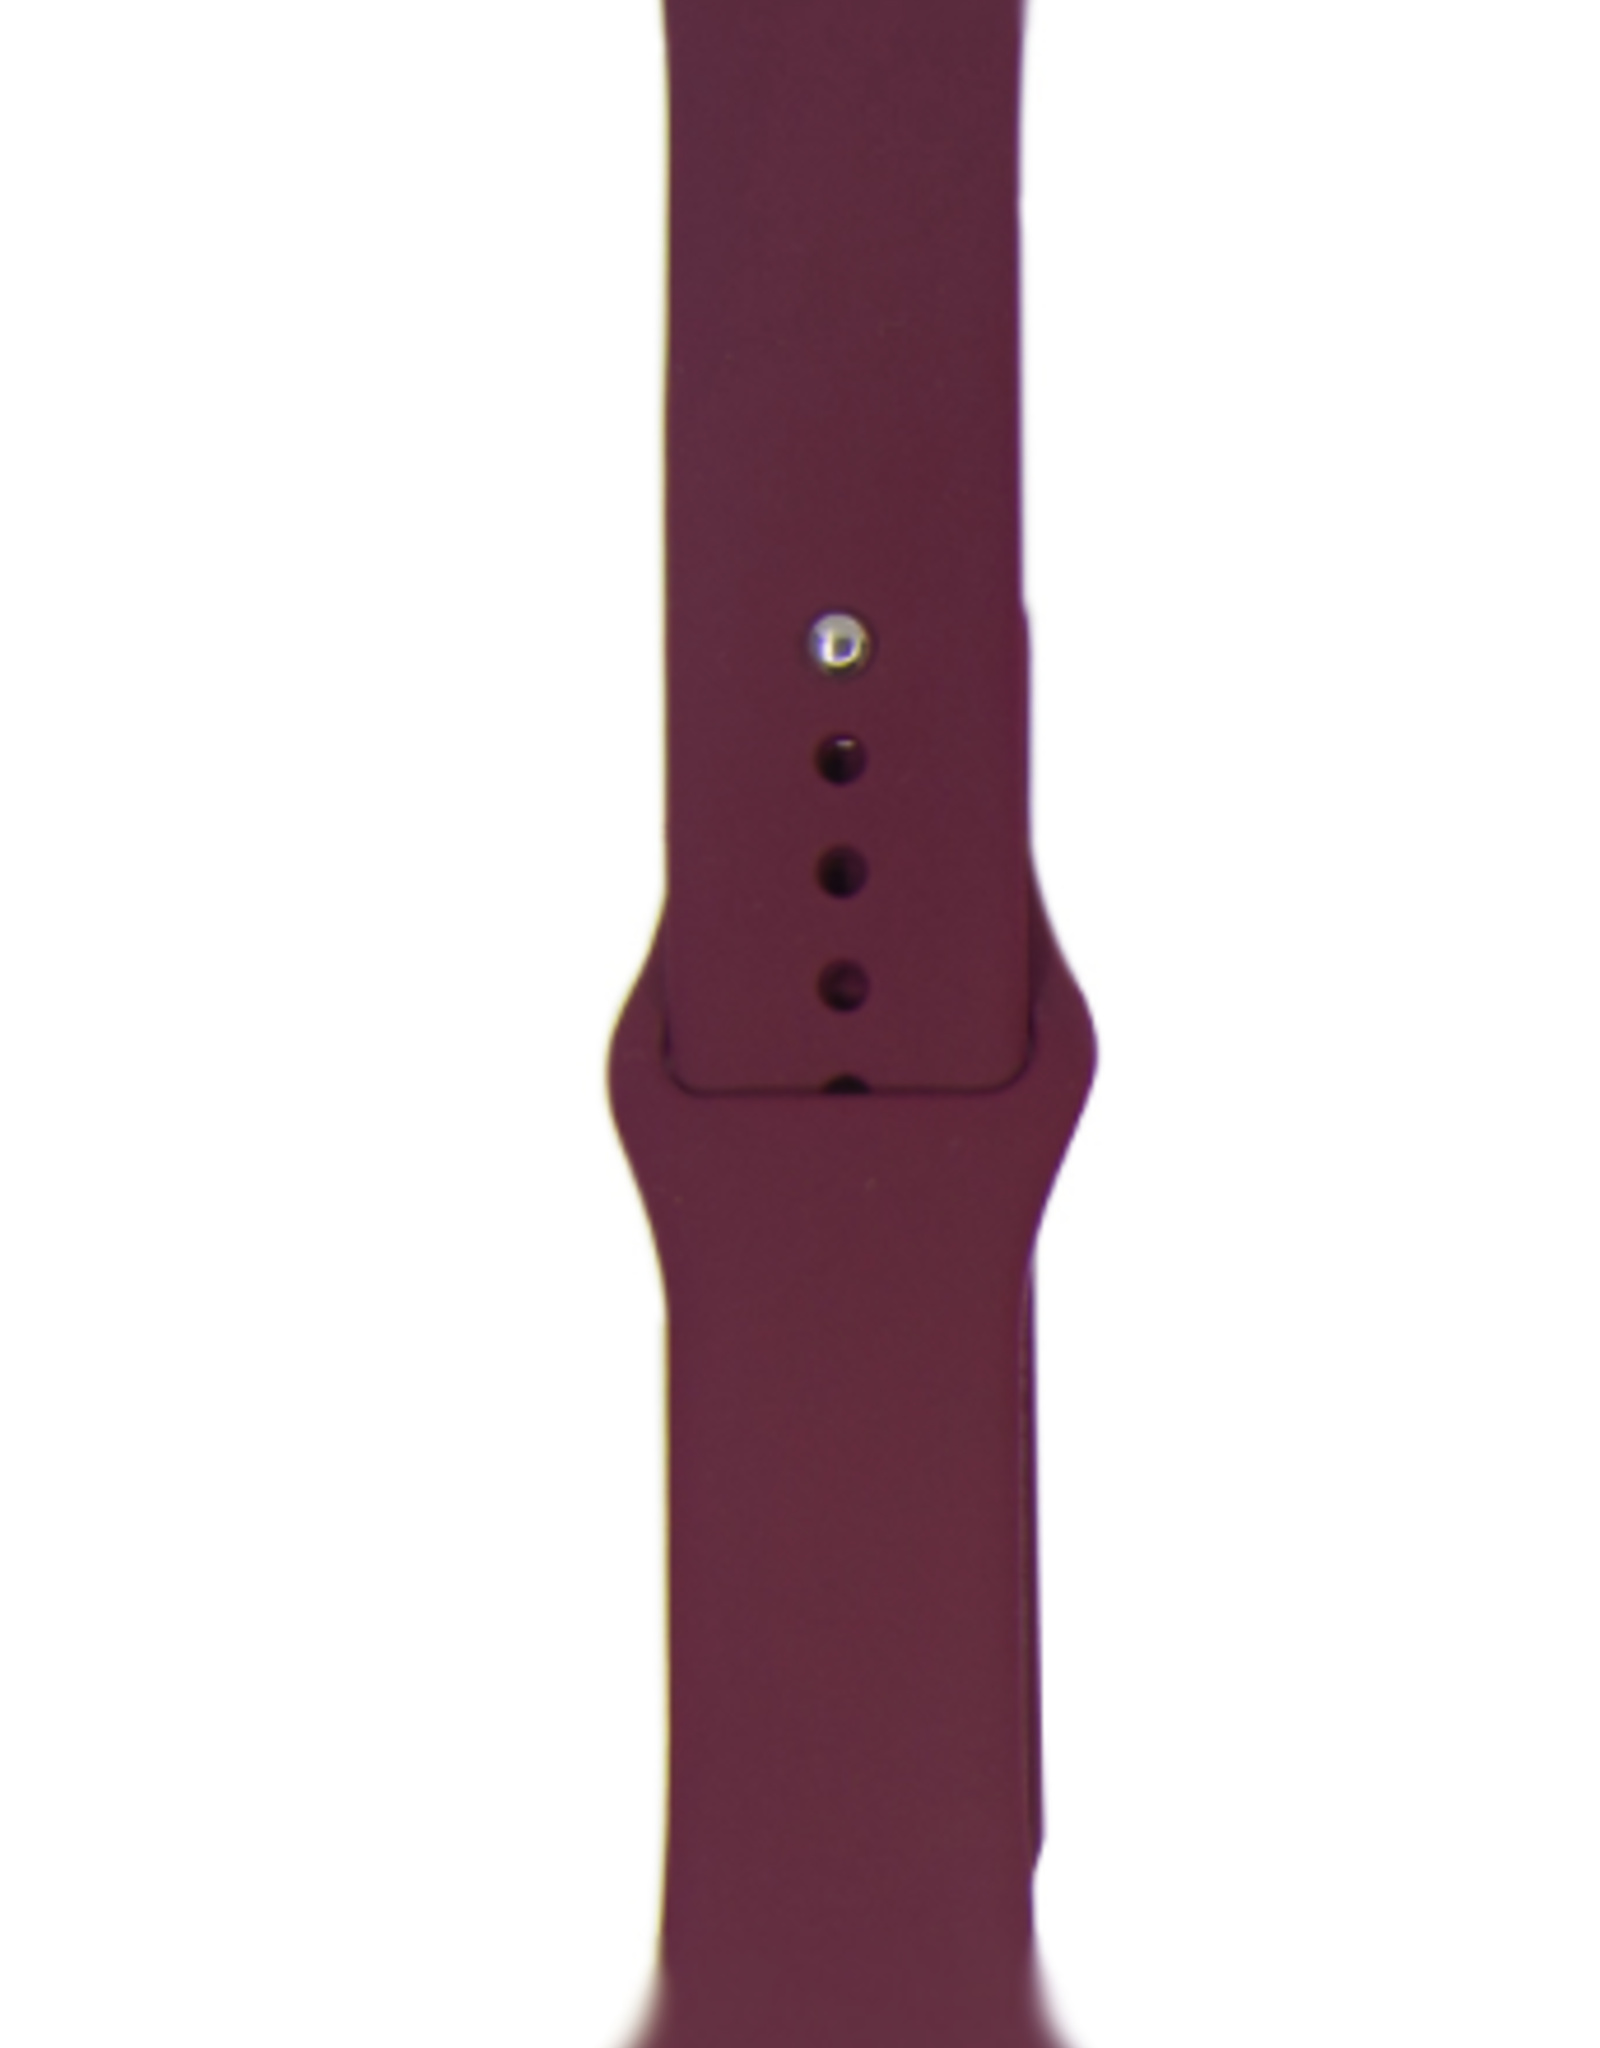 Silicone band for Apple Watch Color:# 2 Wine Red 42/44mm S/M